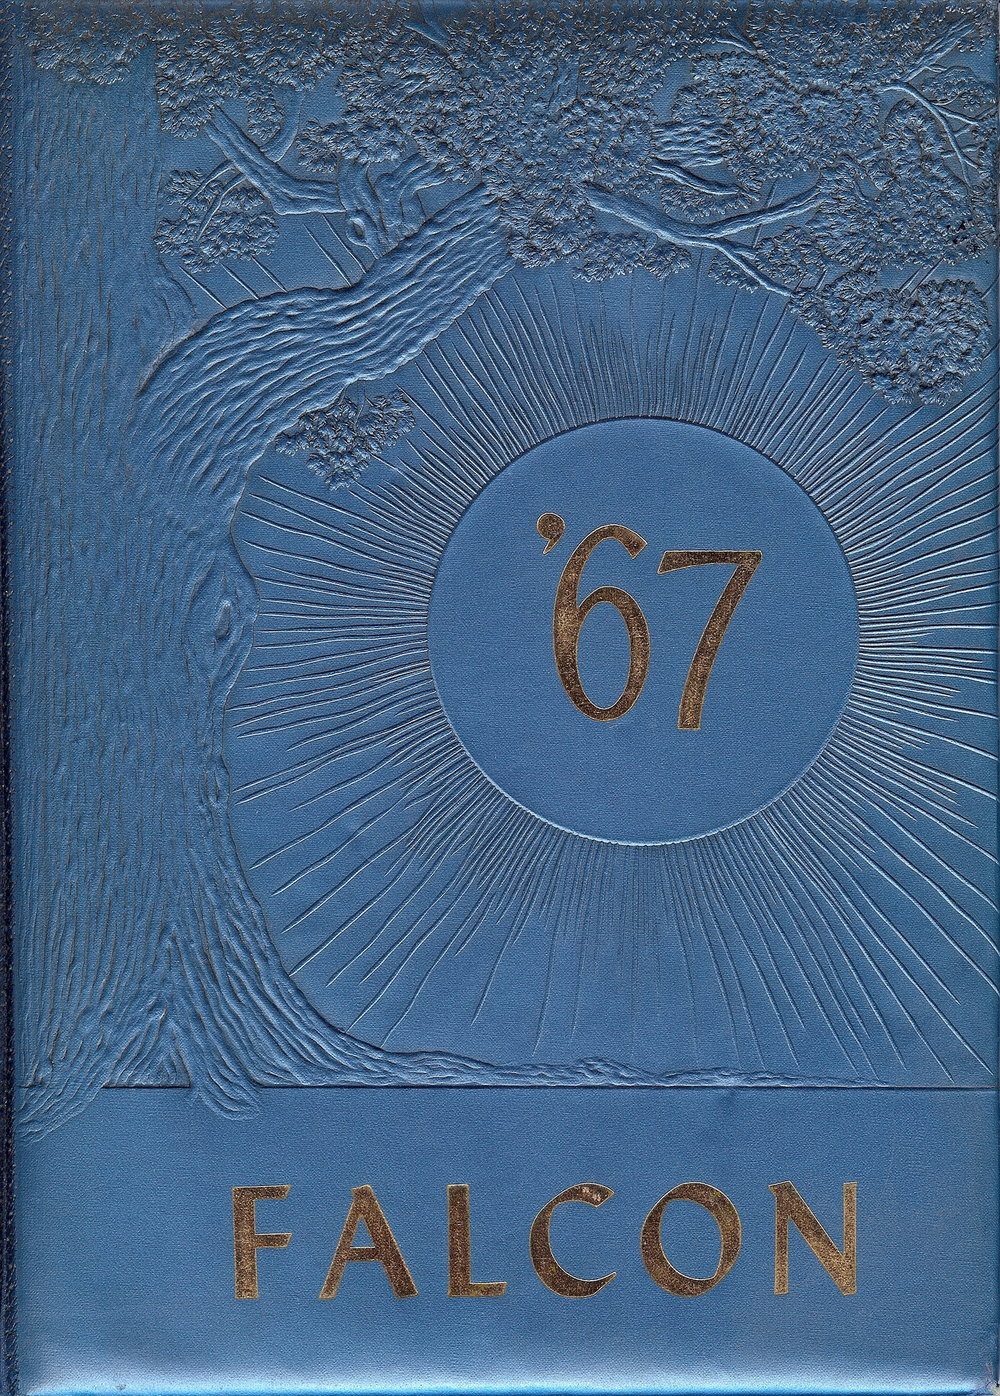 Bob McNeil - 1967 - Age 18 - Twelfth Grade - Channelview High School - Yearbook Cover